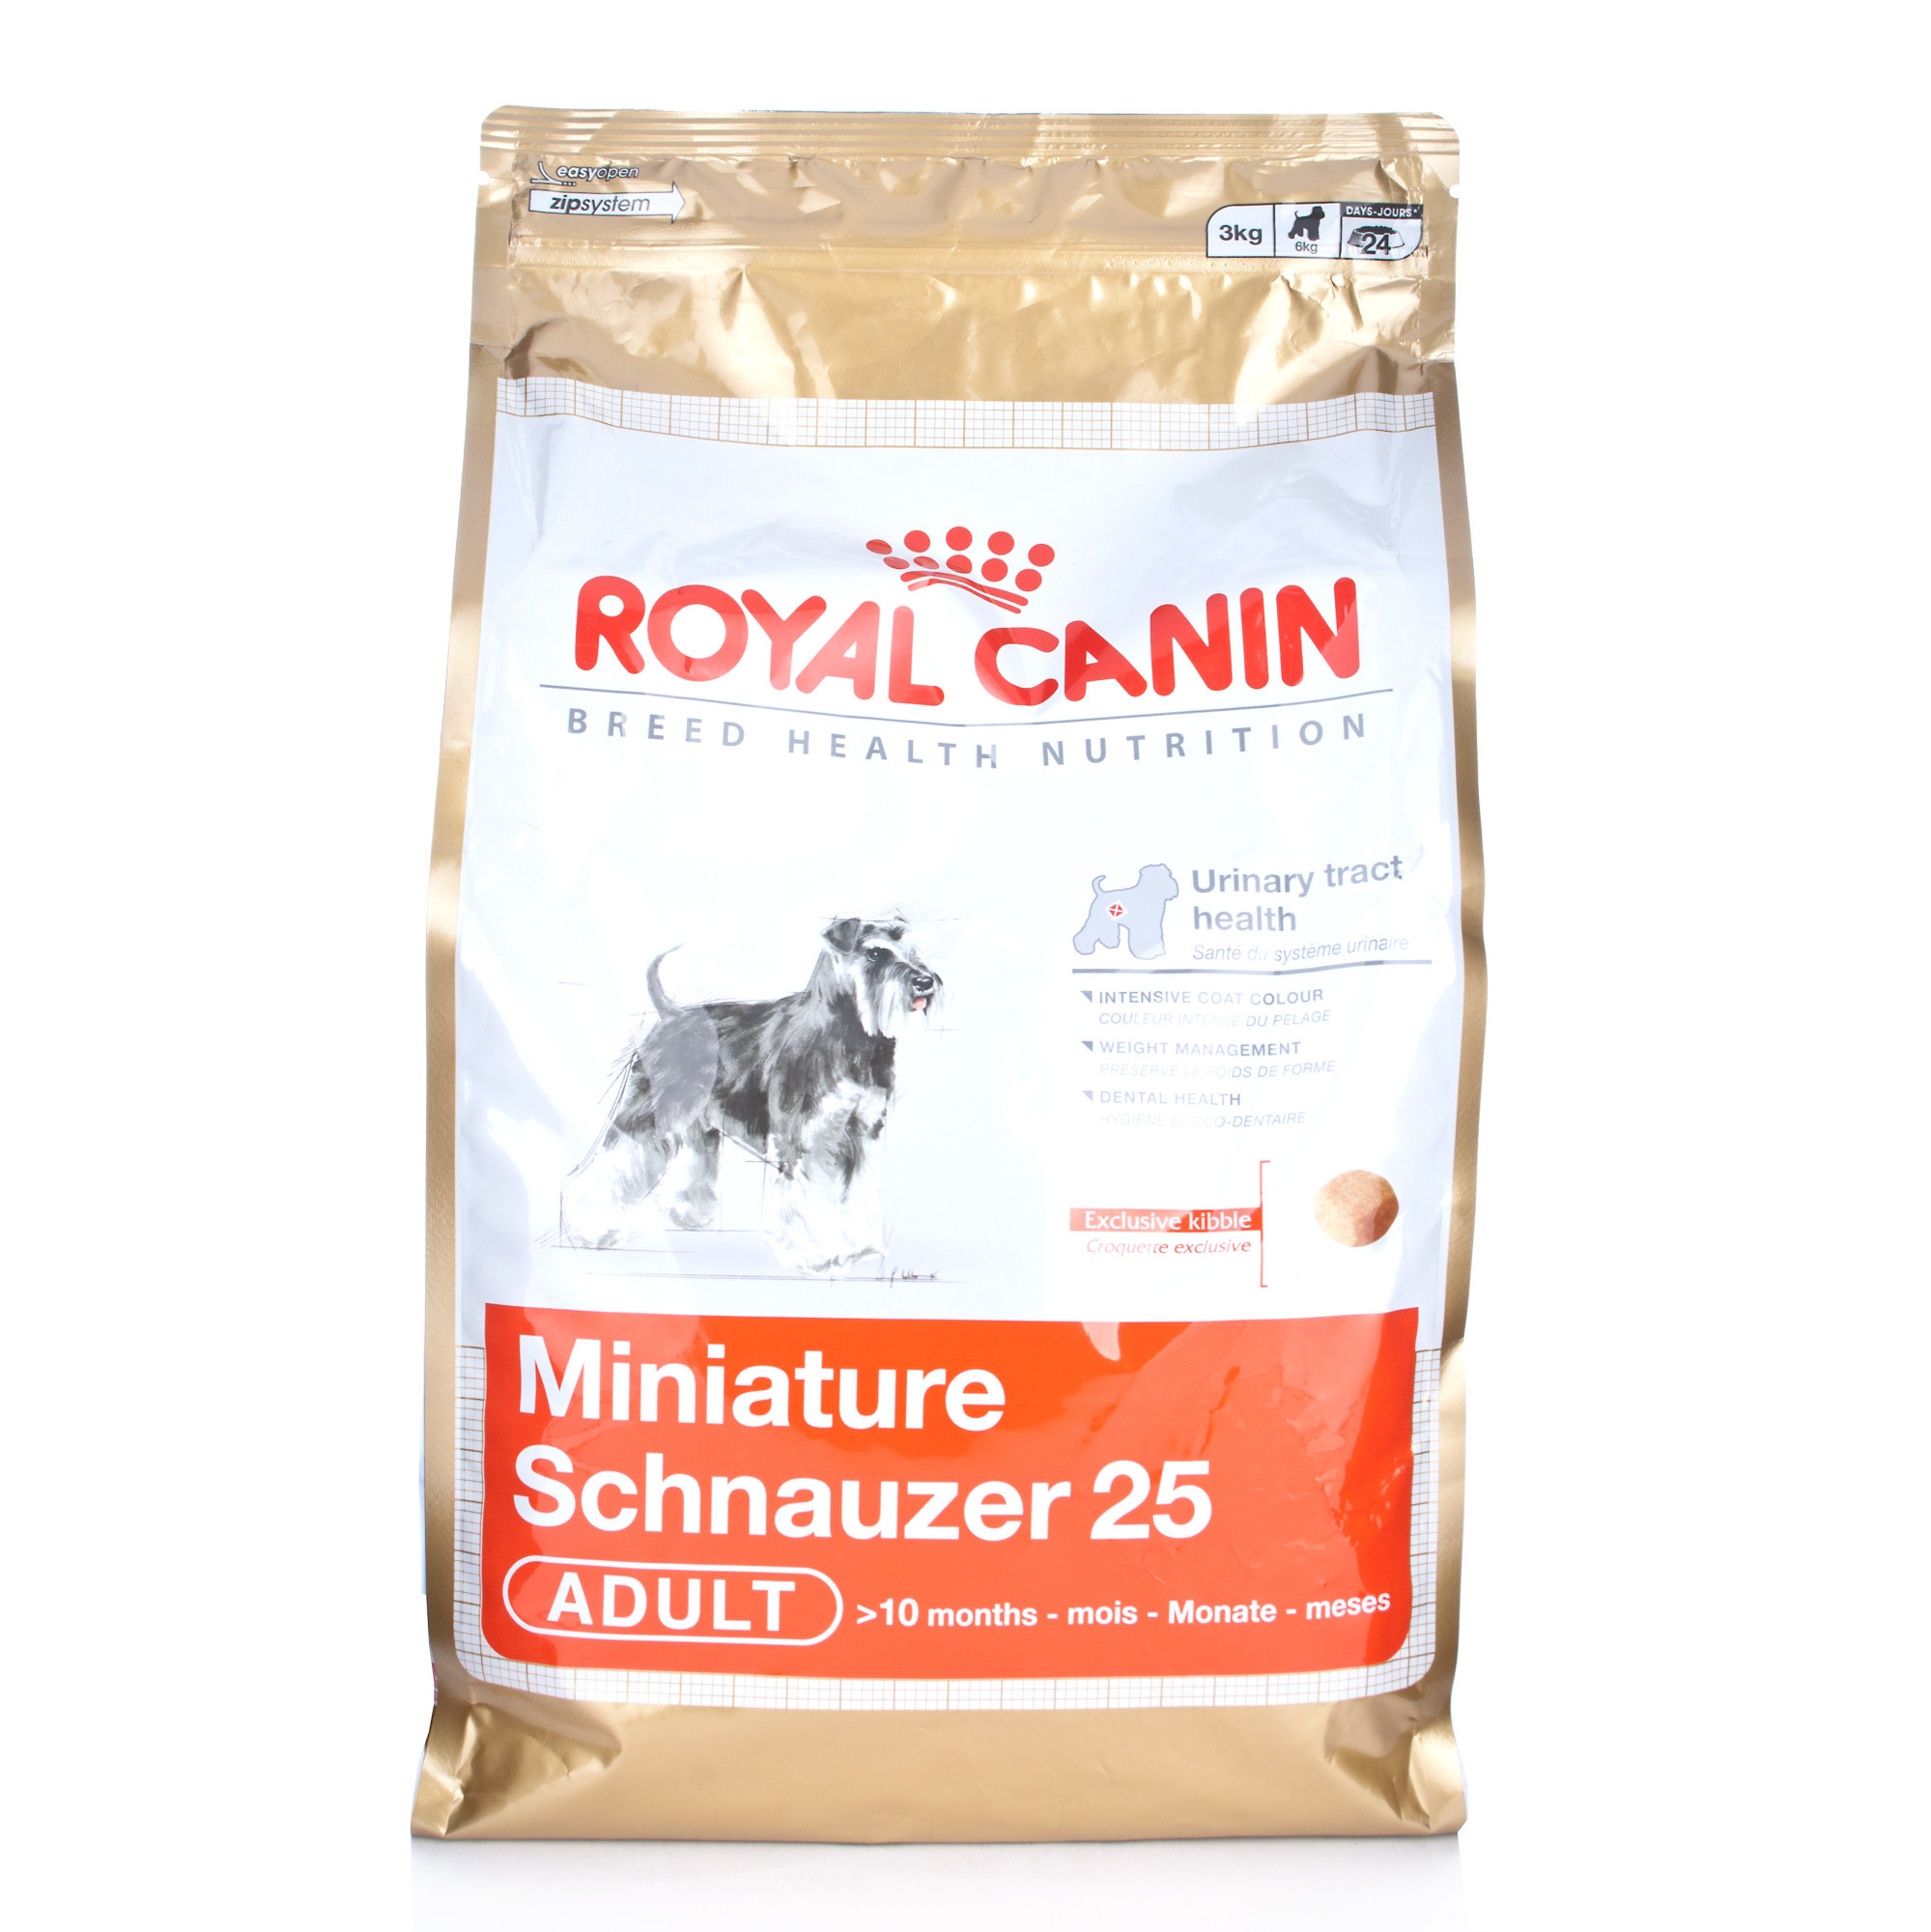 royal canin breed health nutrition miniature schnauzer adult ebay. Black Bedroom Furniture Sets. Home Design Ideas